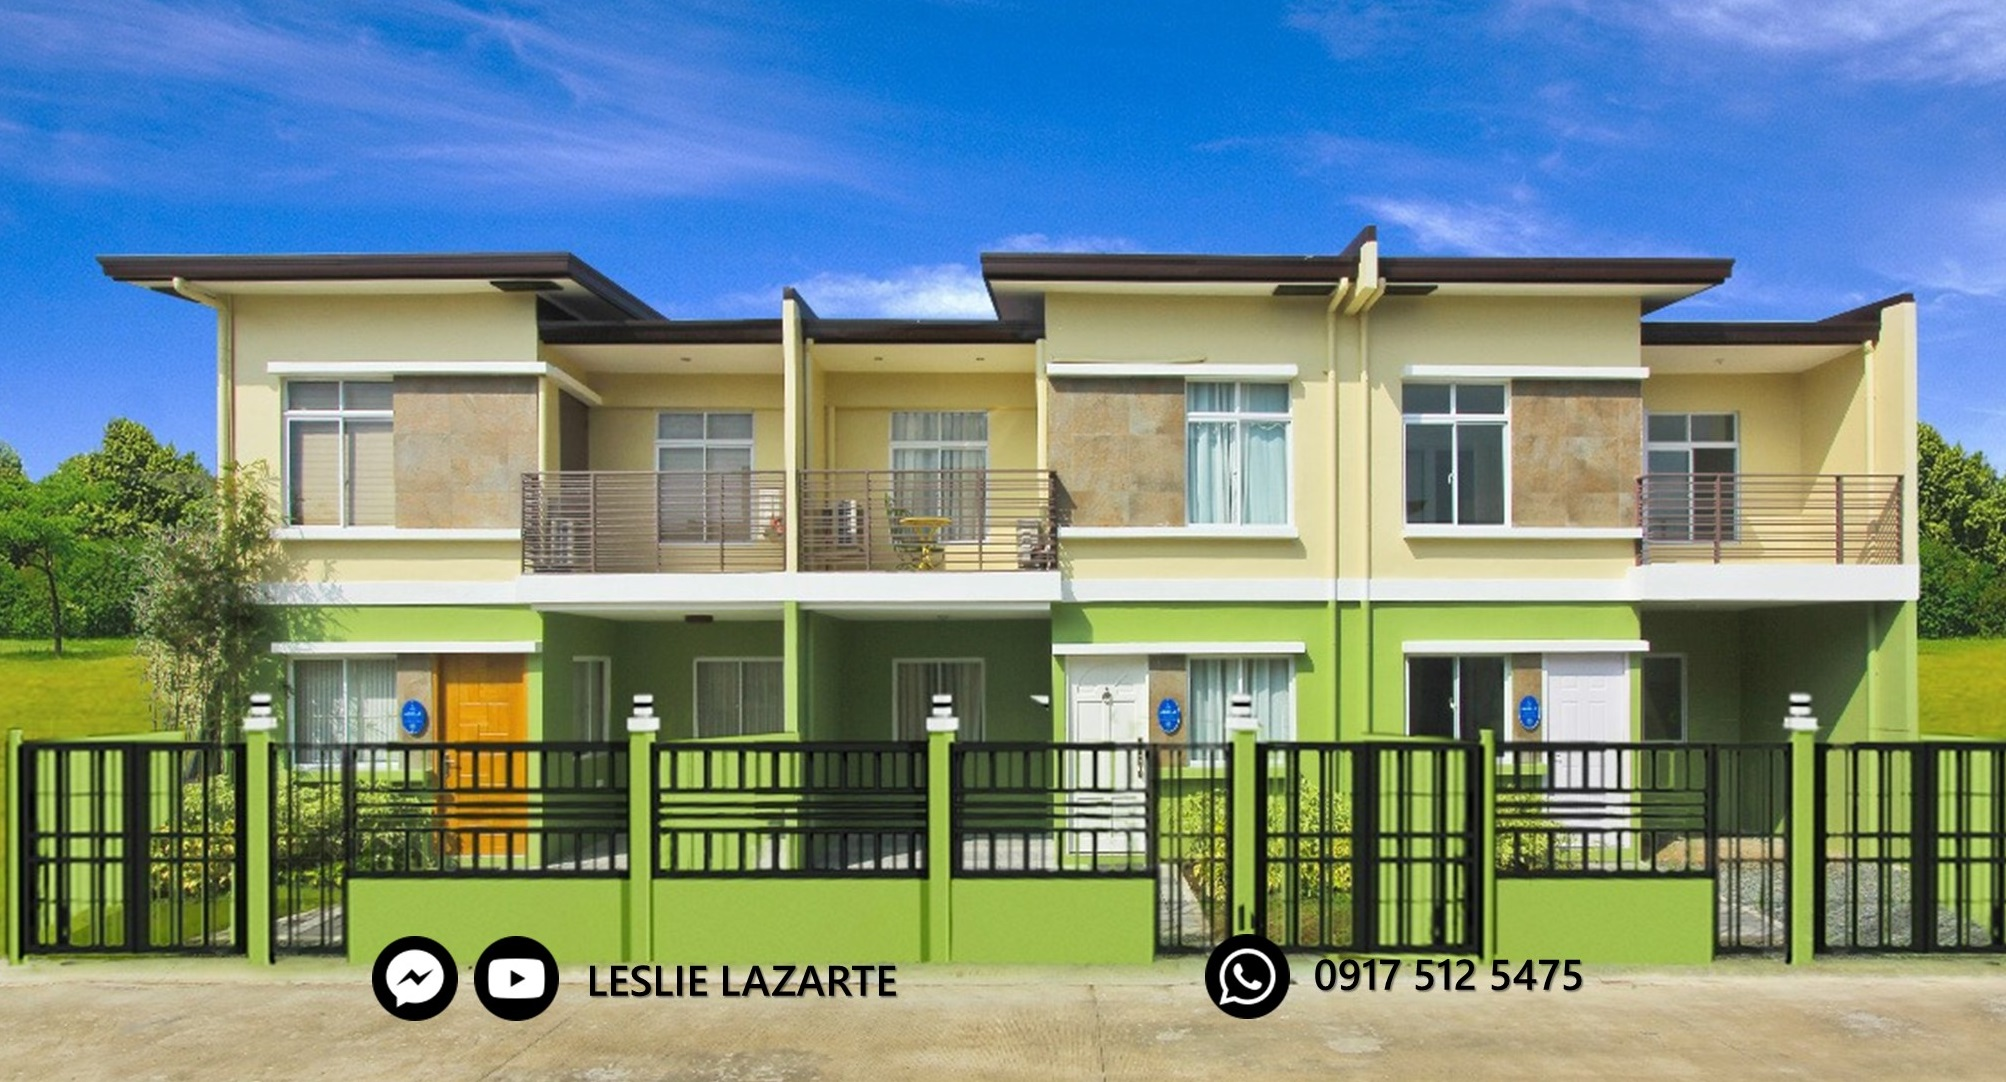 Adelle With Fence - Lancaster New City Cavite | House and Lot for Sale General Trias Cavite